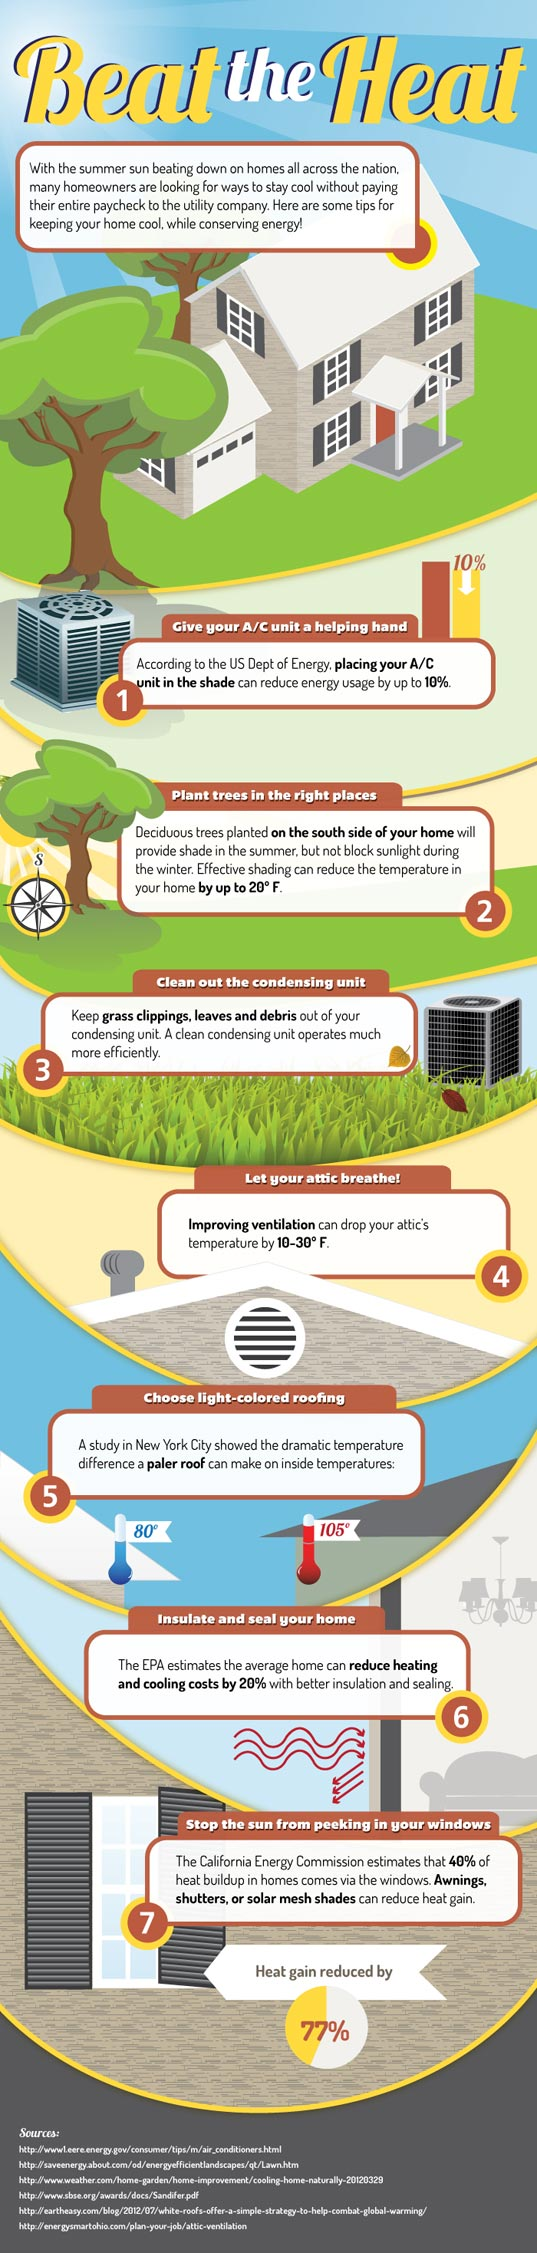 beat the heat, energy efficient cooling, heatwave, air conditioner, air conditioning, ac, summer heat, energy-efficiency, green design, sustainable design, green building, toms mechanical